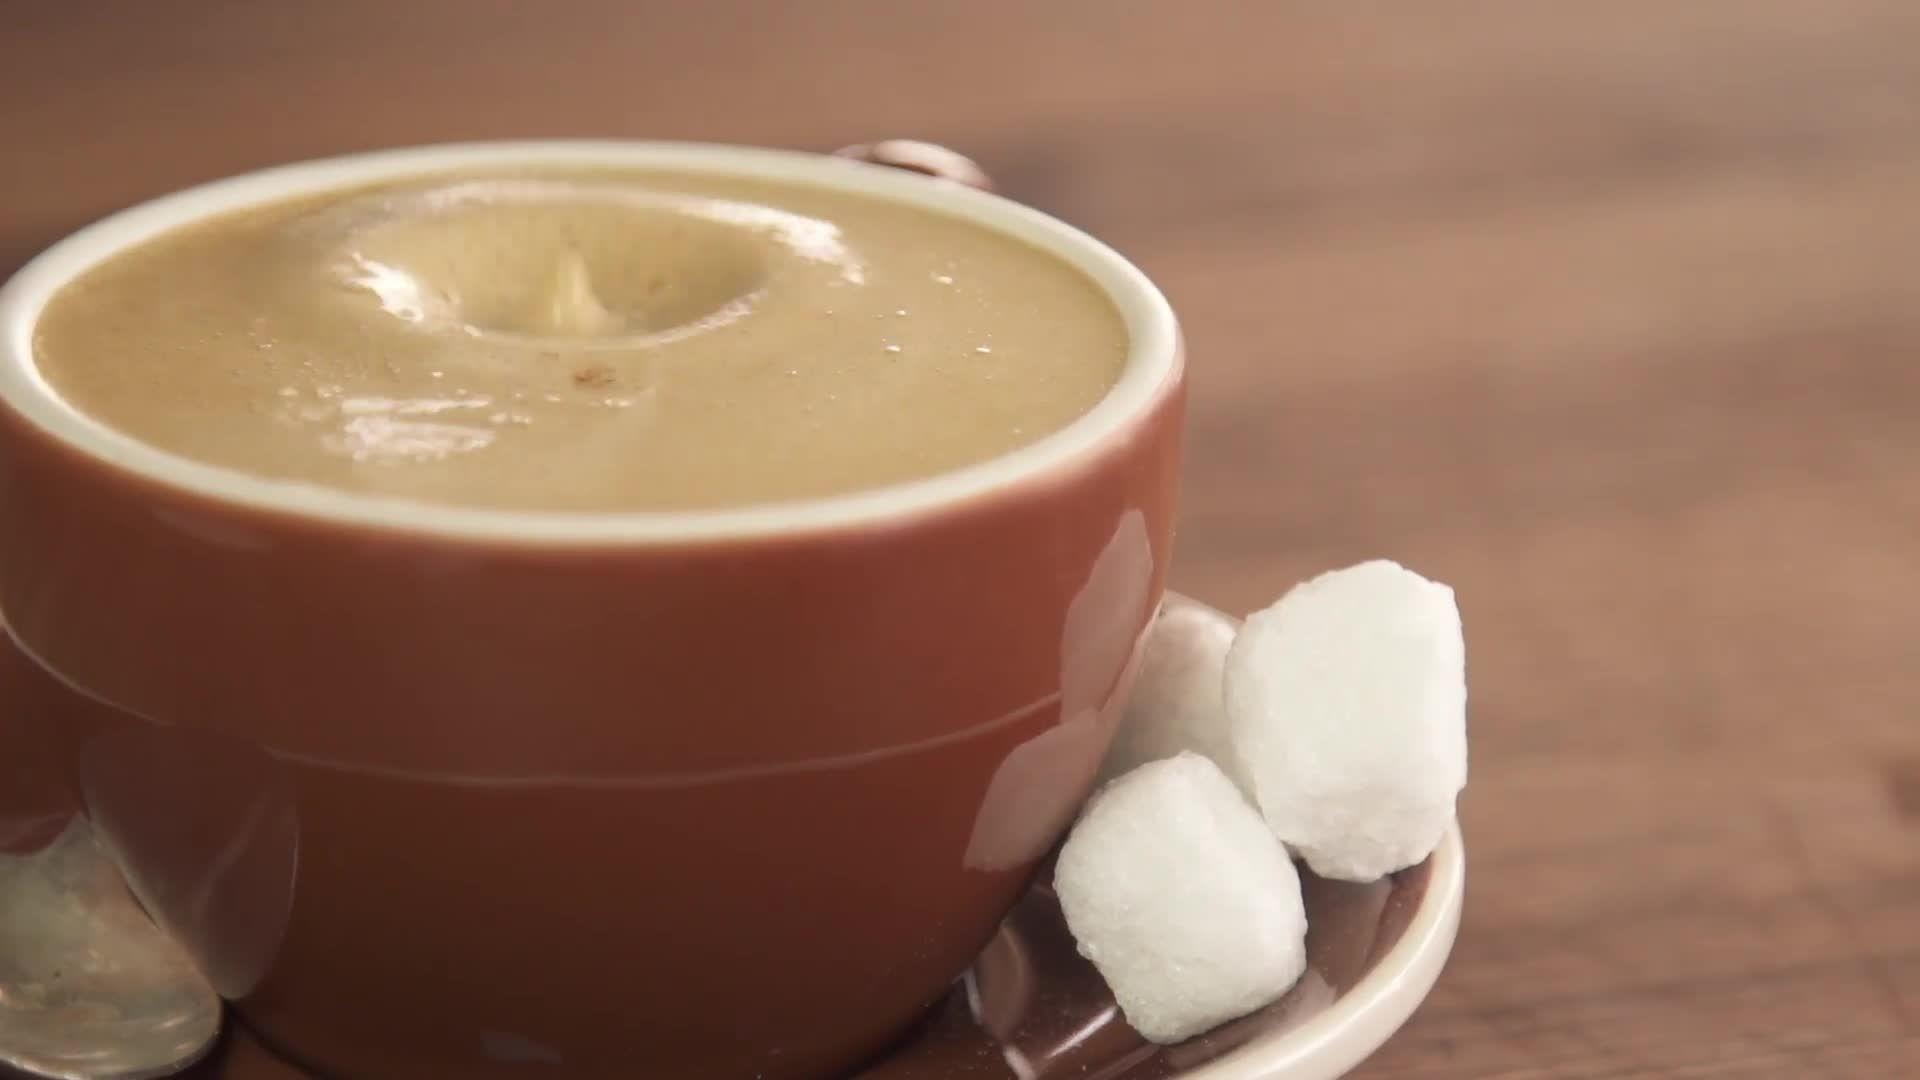 Science of Food: How to Make a Latte Without Milk or a Fancy Espresso Machine